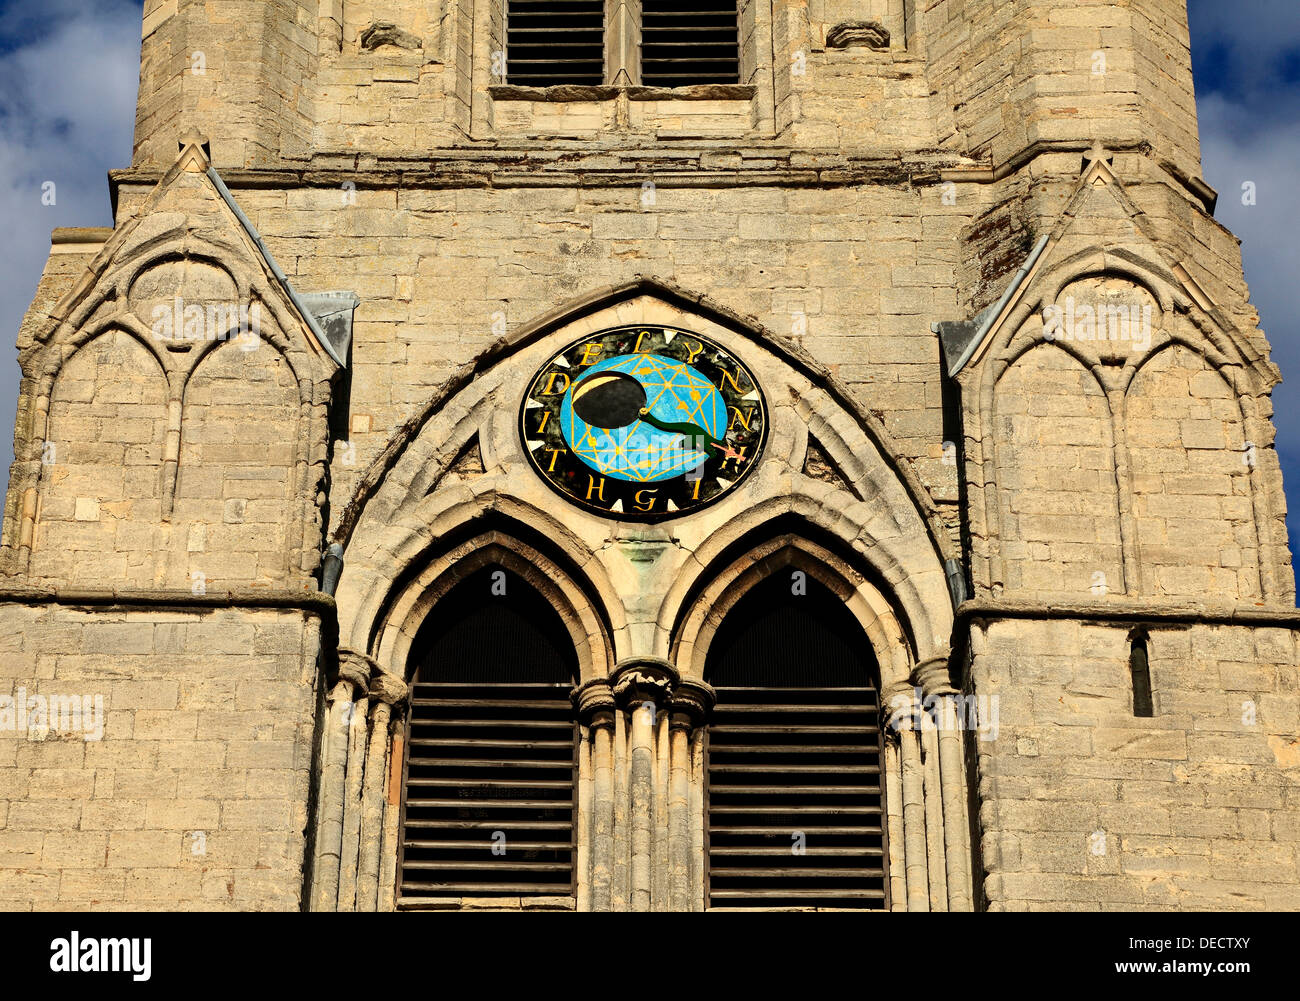 High Tide amd Moon Phase Clock, Kings Lynn St. Margaret's church tower, Norfolk Englland UK clocks - Stock Image